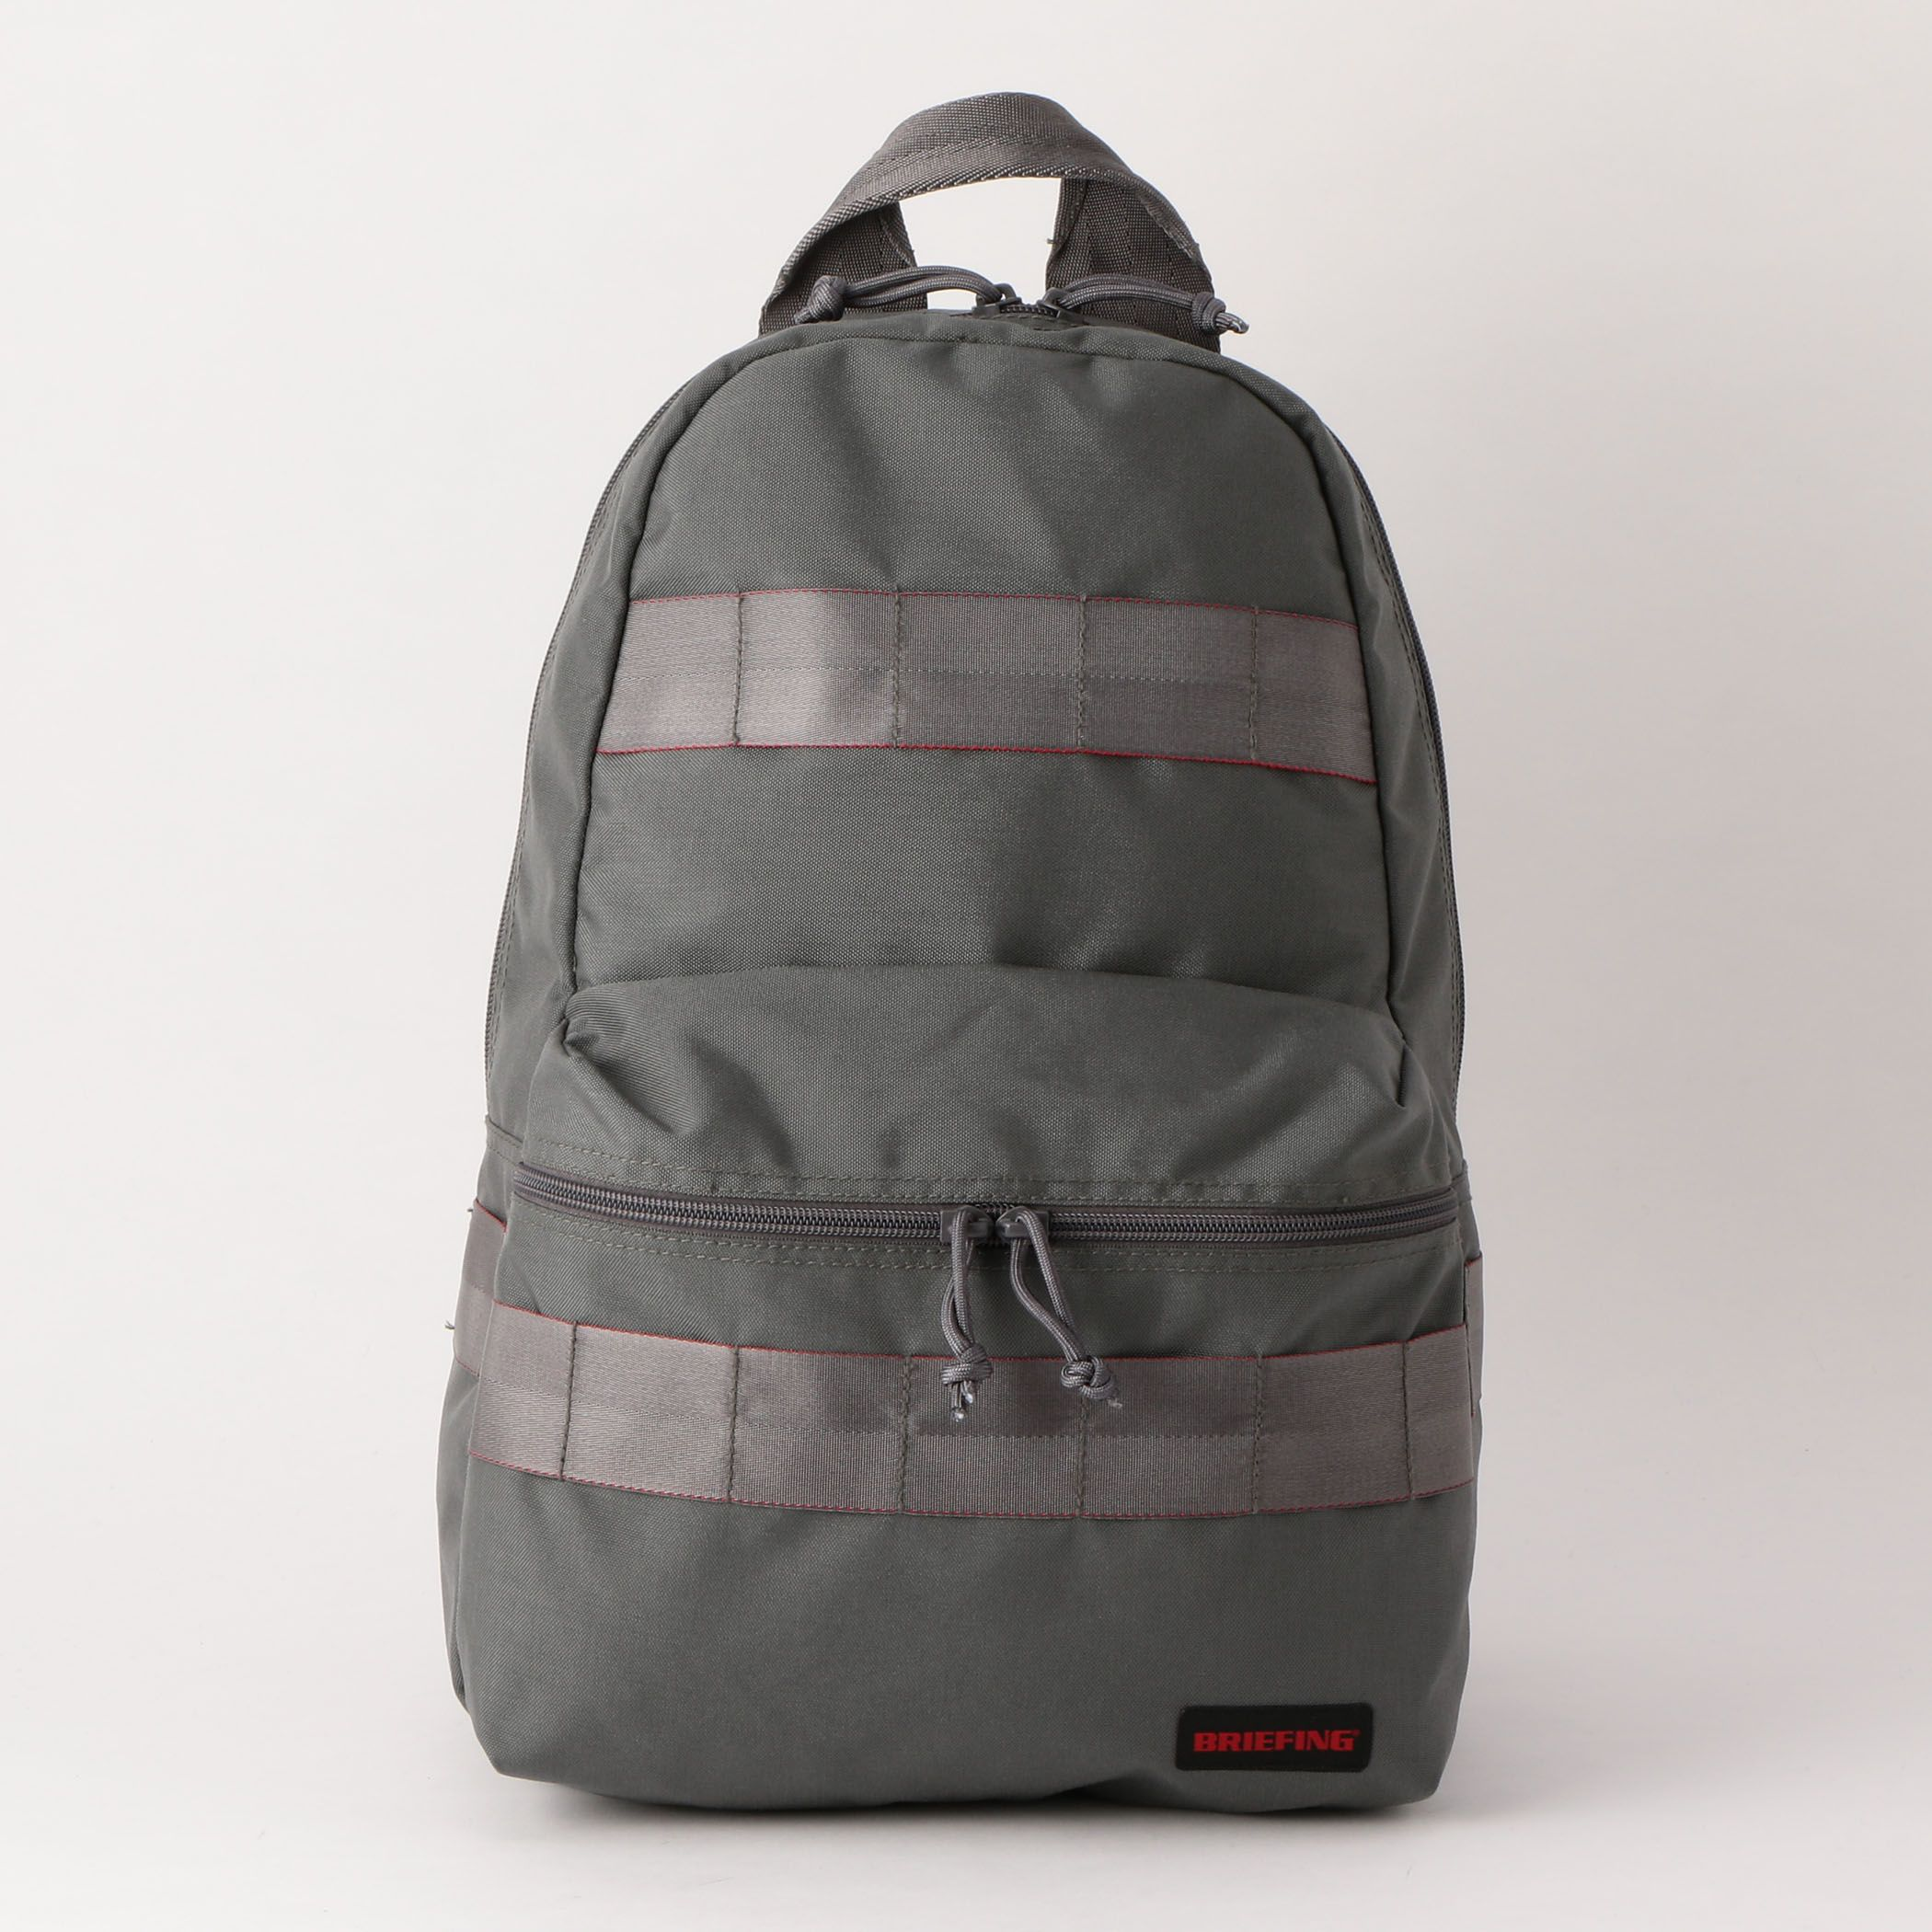 【BRIEFING/ブリーフィング】NEO AT PACK (BRF42219-010)